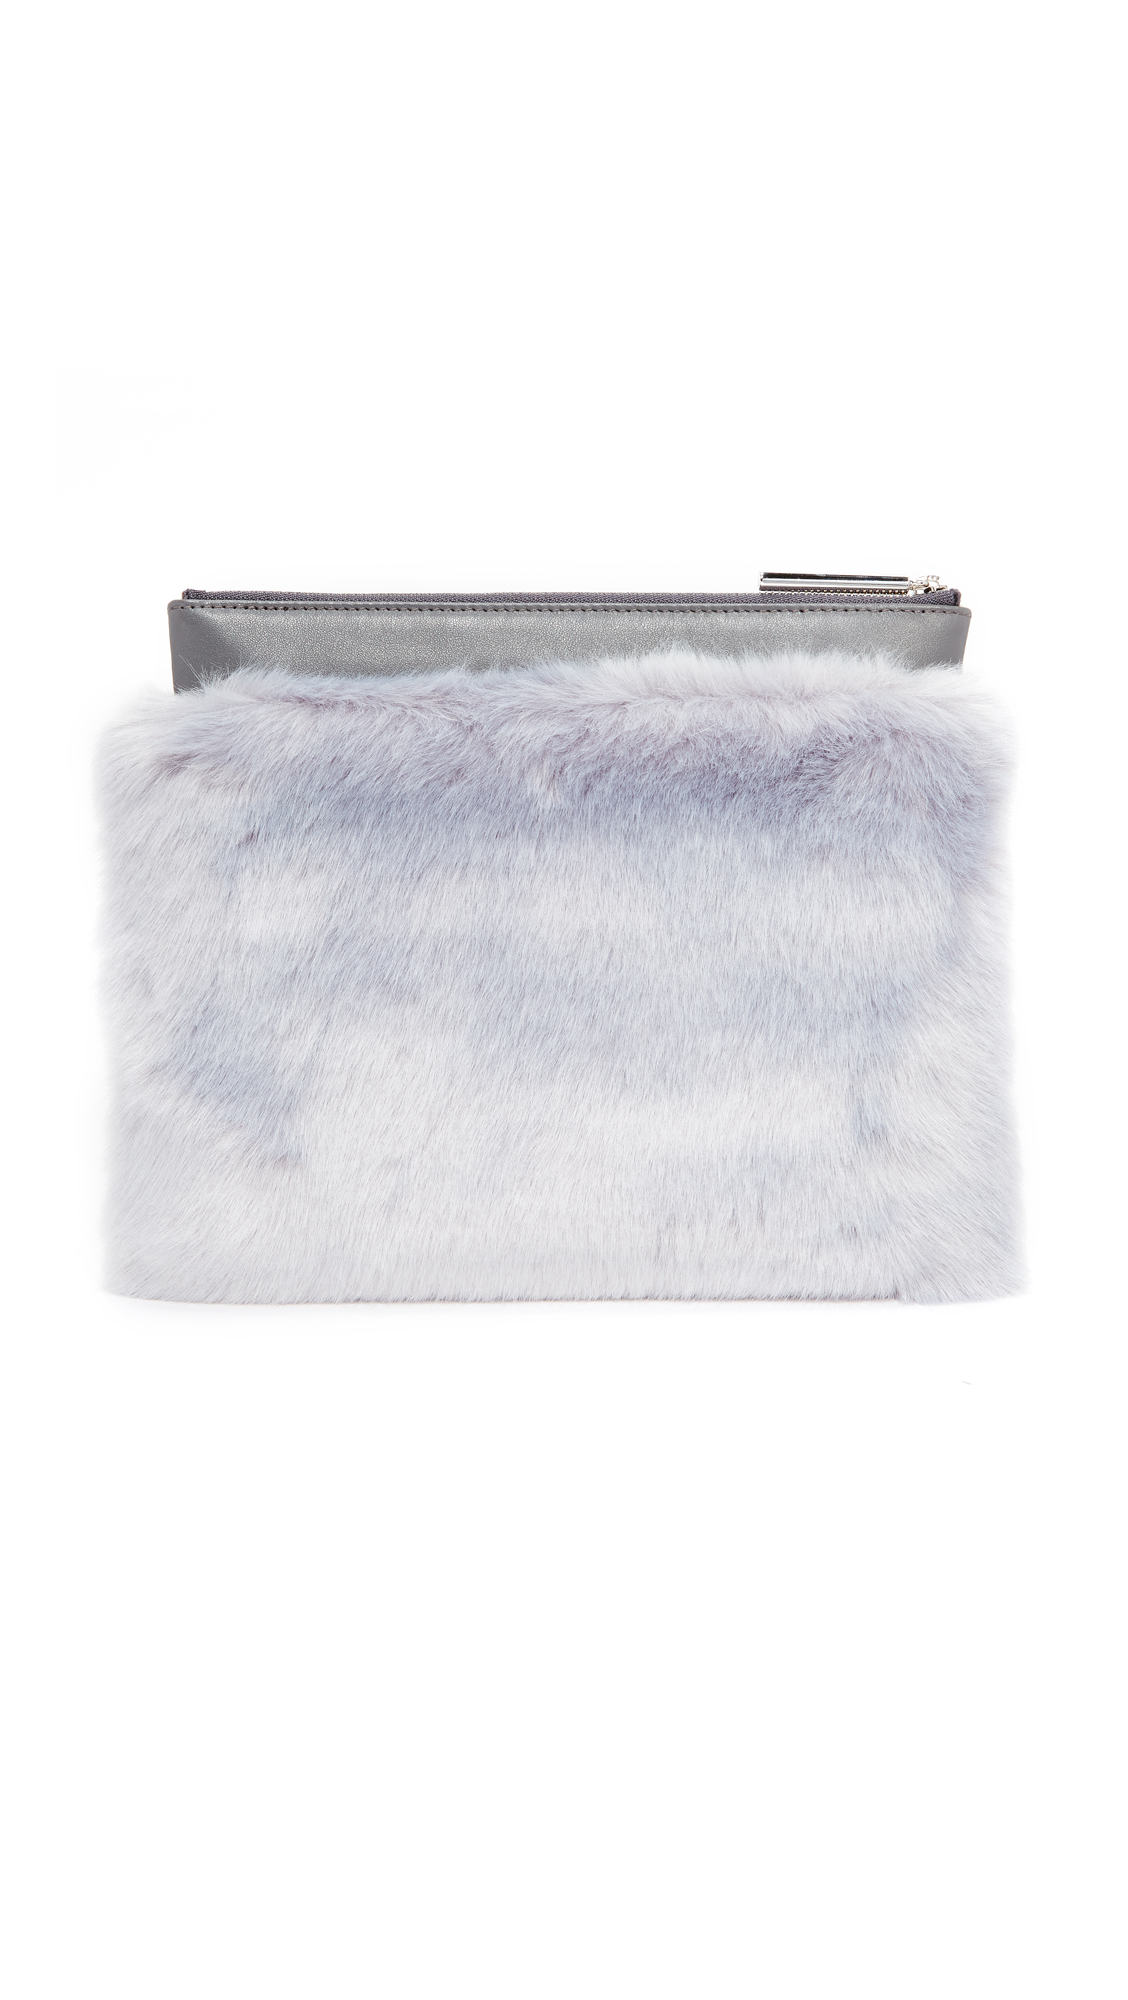 MILMA Detachable Faux Fur Clutch - Grey/Grey